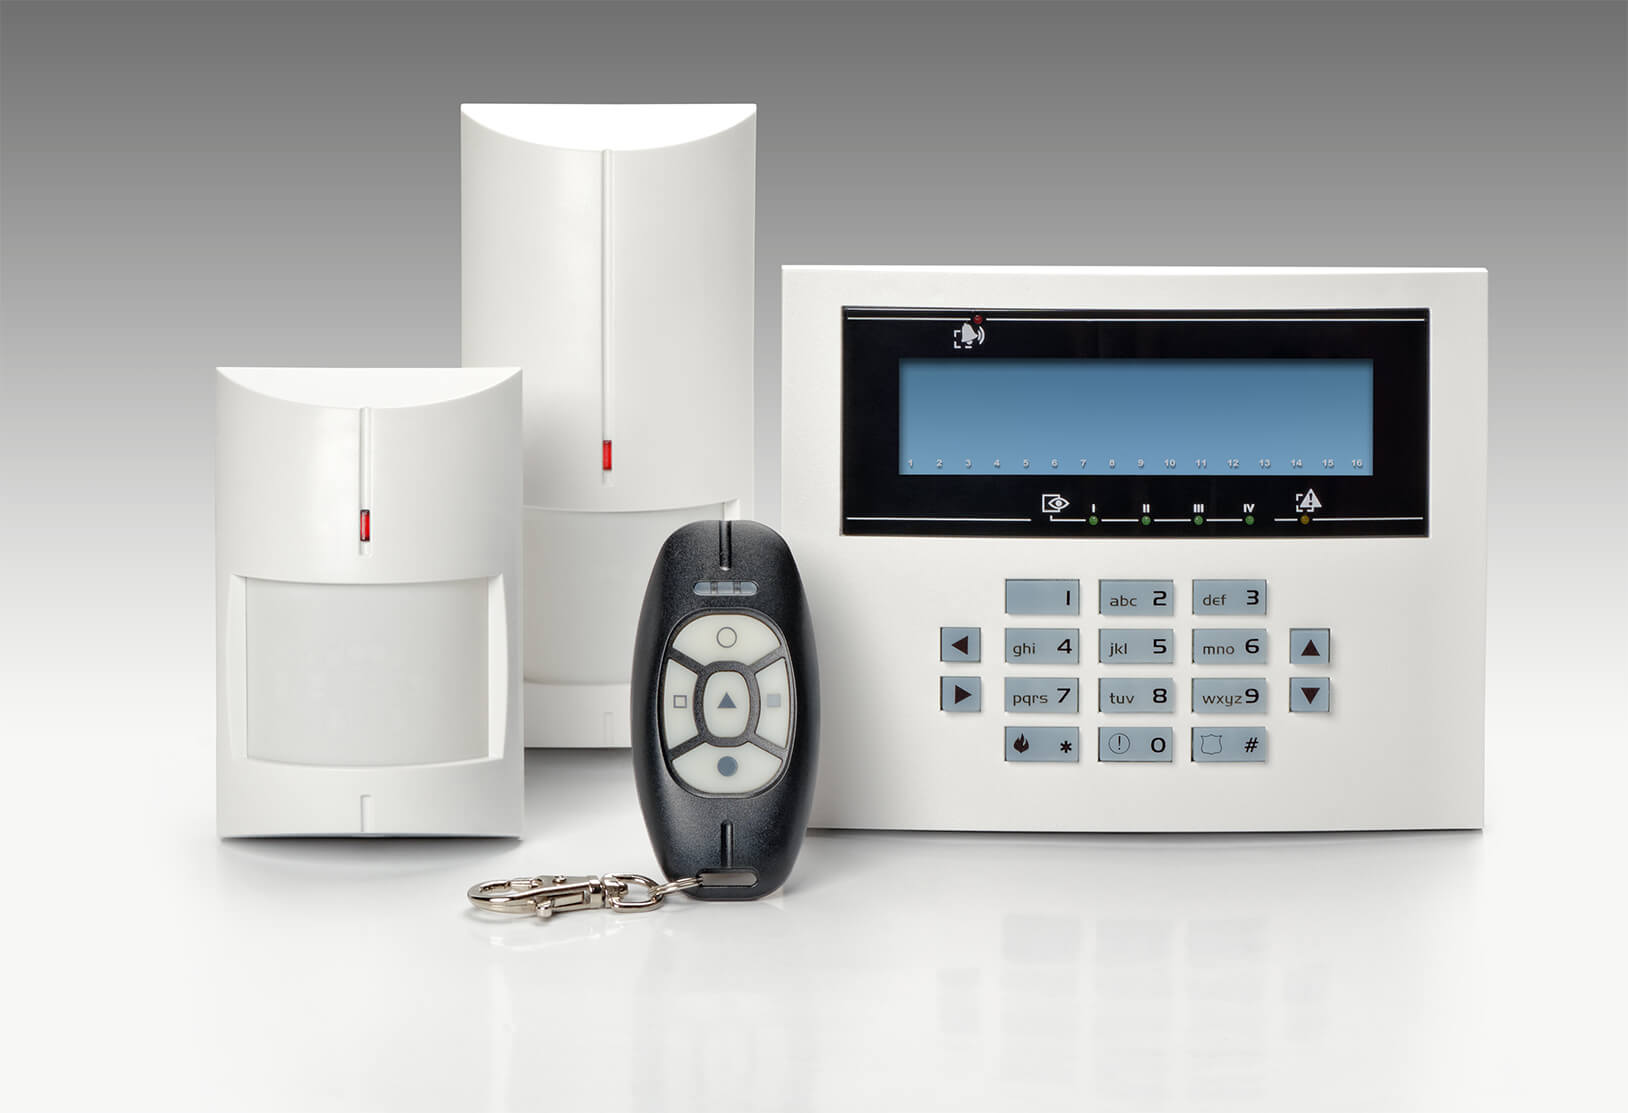 Commercial Burglar Alarms For Business in Hampstead NW5  - Local Hampstead NW5 burglar alarm company.Call 02078872244 - Dedicated to Safety & Security. Companies, shops and homes ..